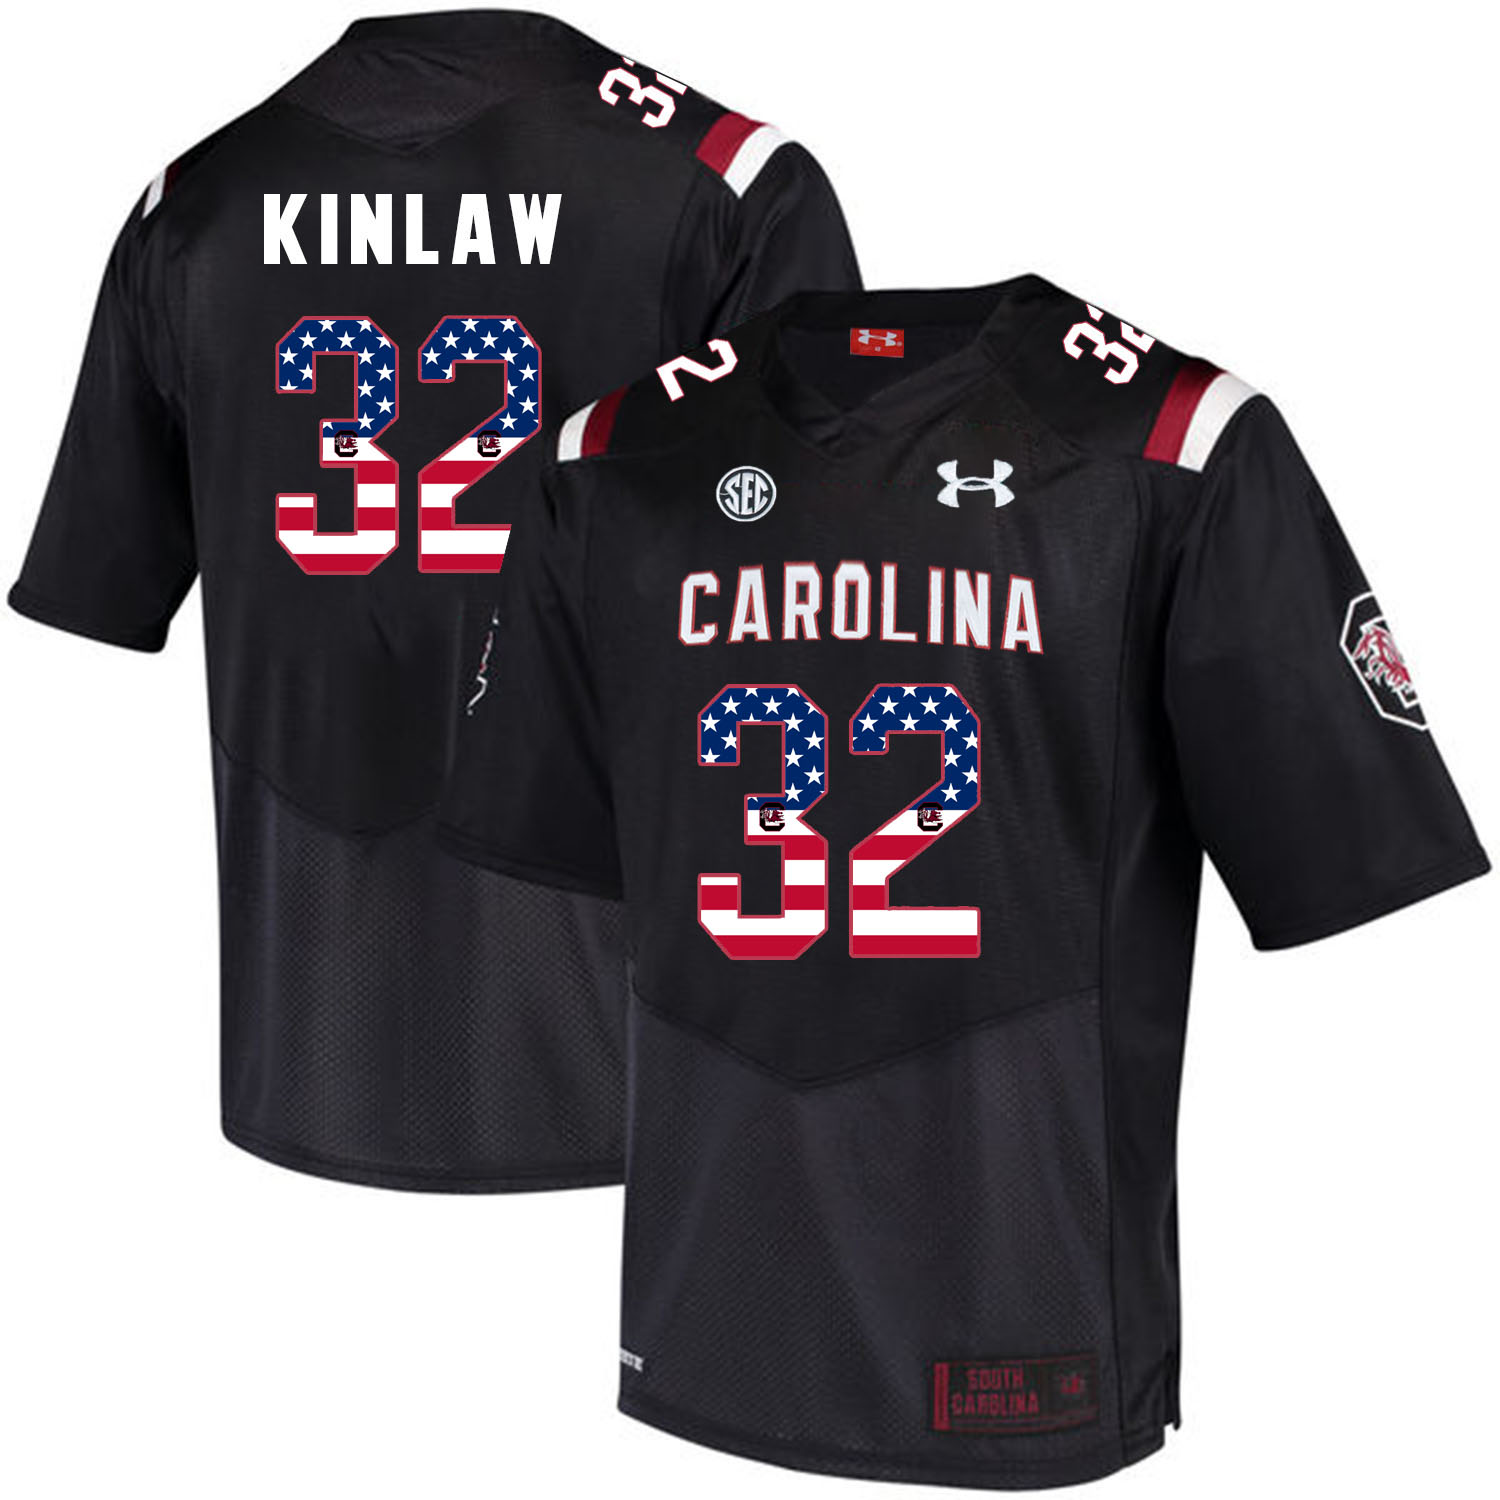 South Carolina Gamecocks 32 Caleb Kinlaw Black USA Flag College Football Jersey